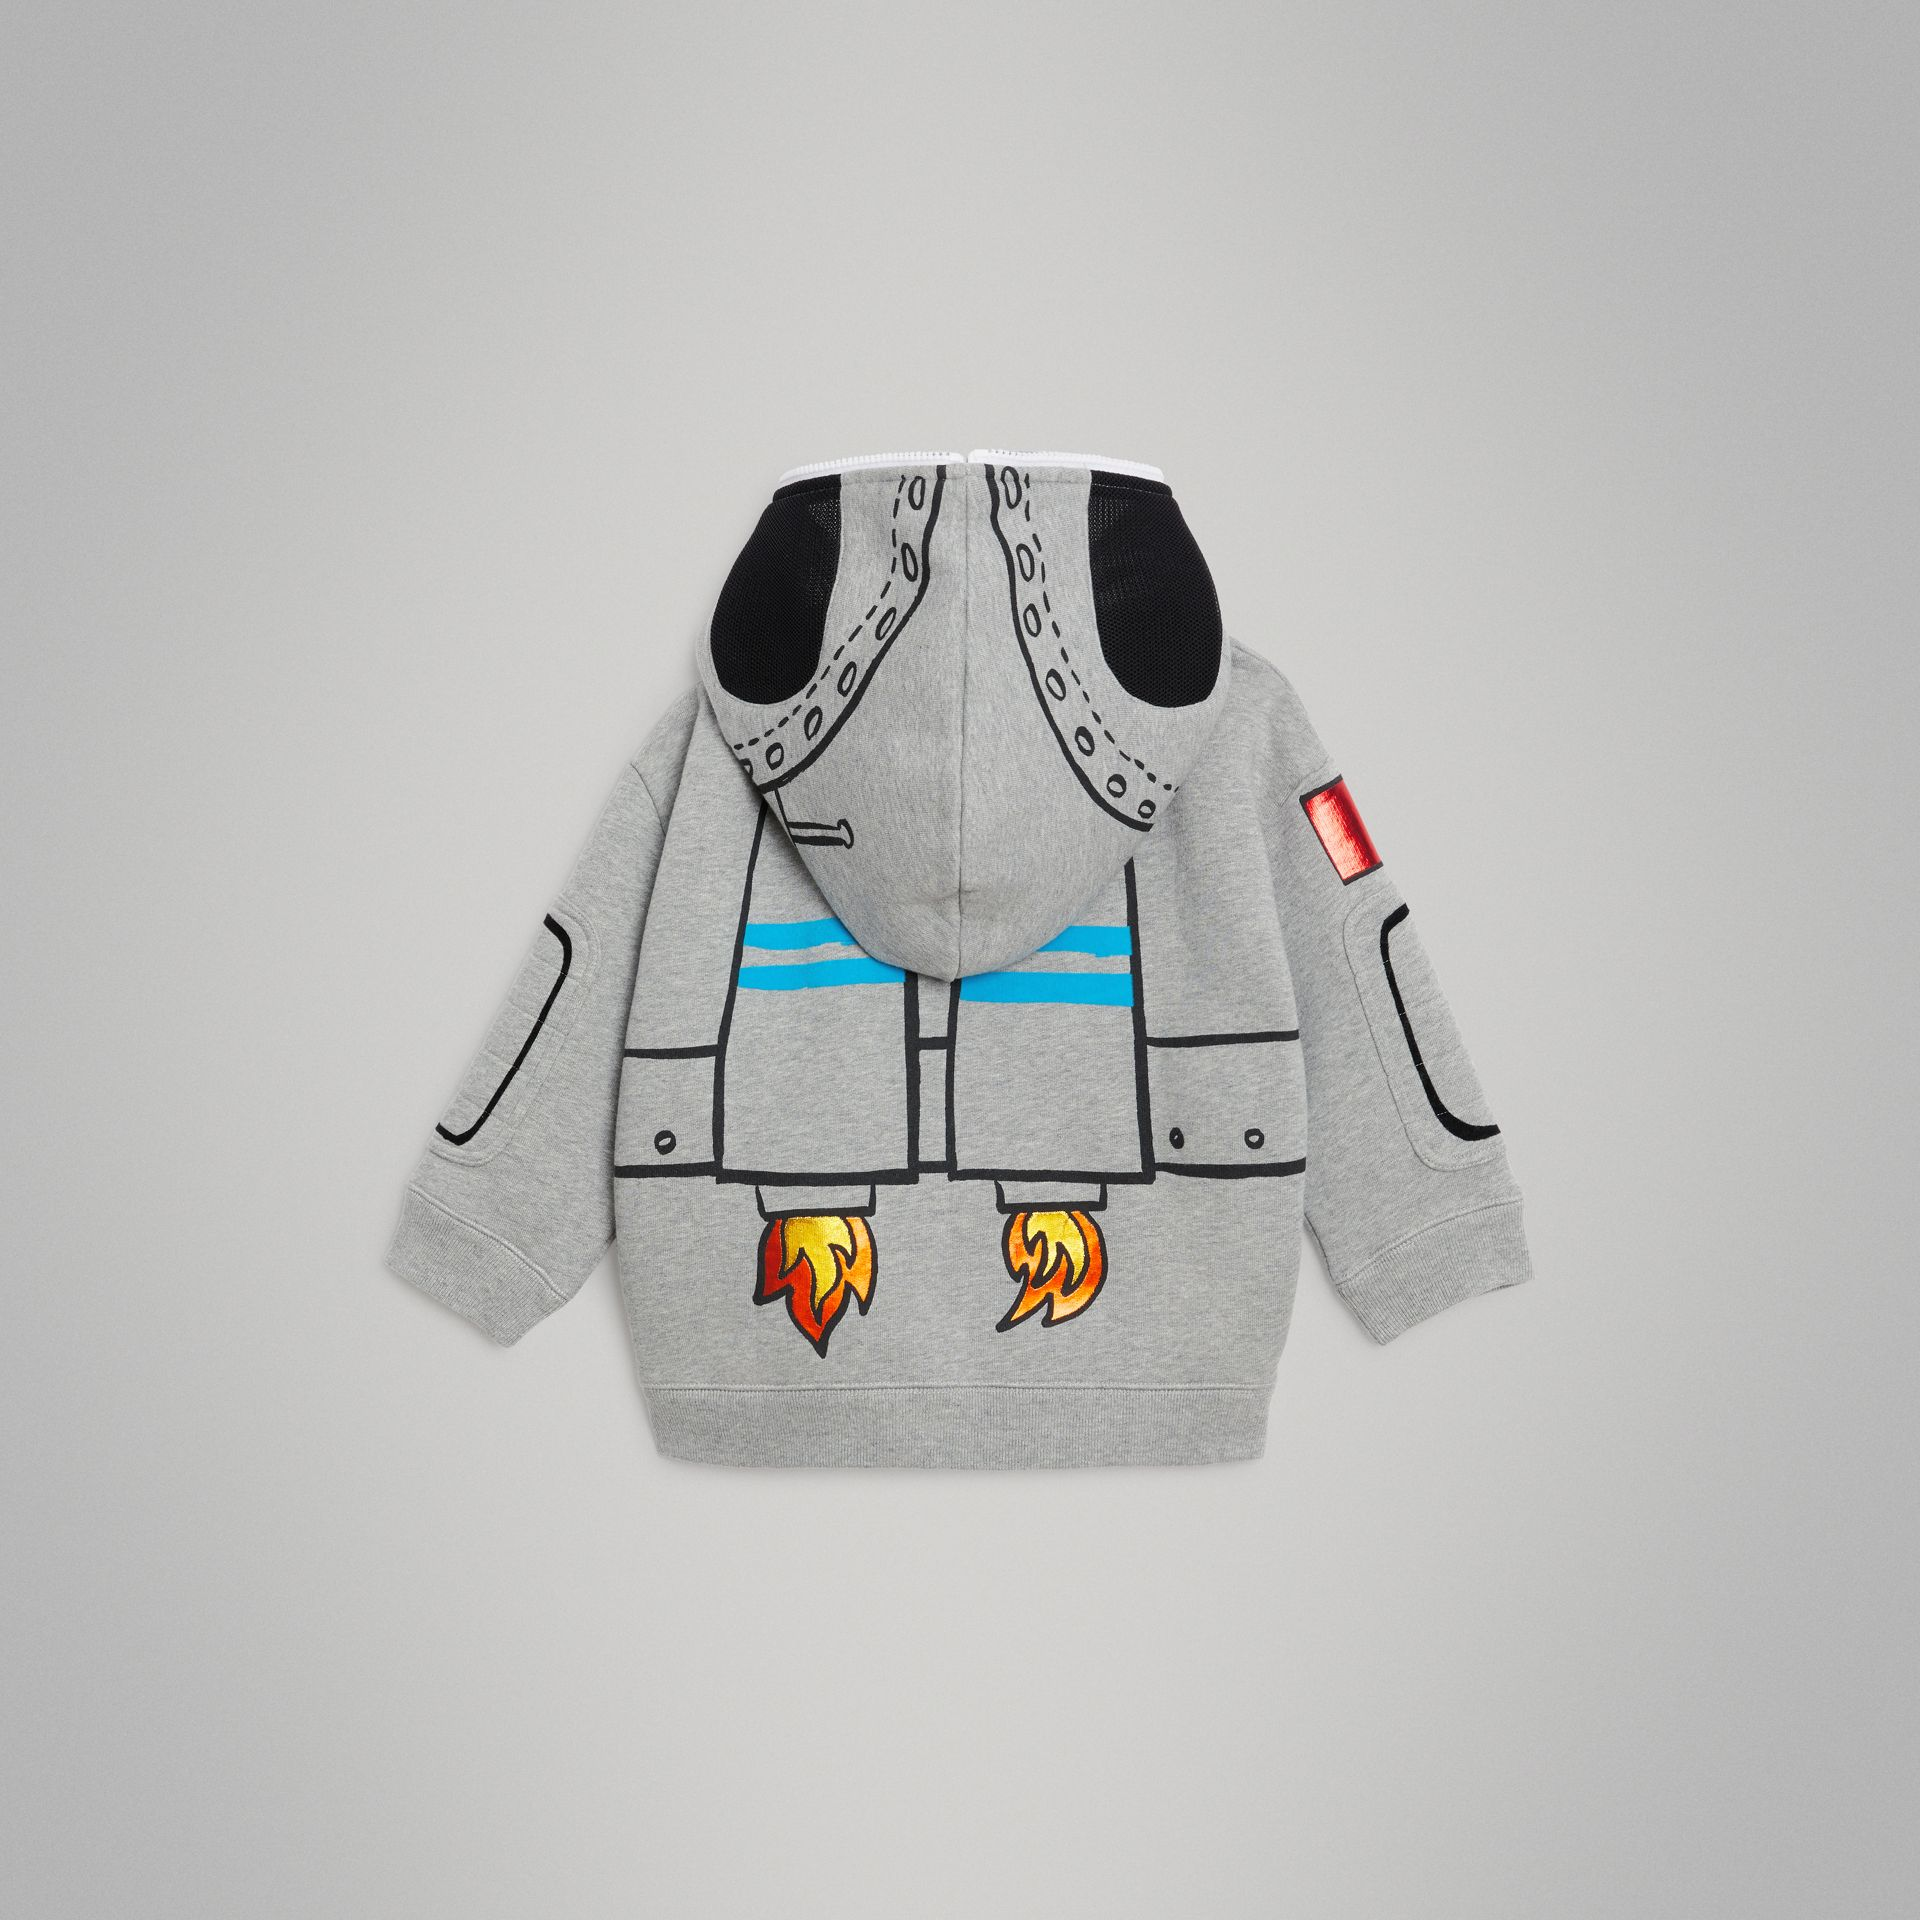 Astronaut Print Jersey Hooded Top in Grey Melange | Burberry - gallery image 3